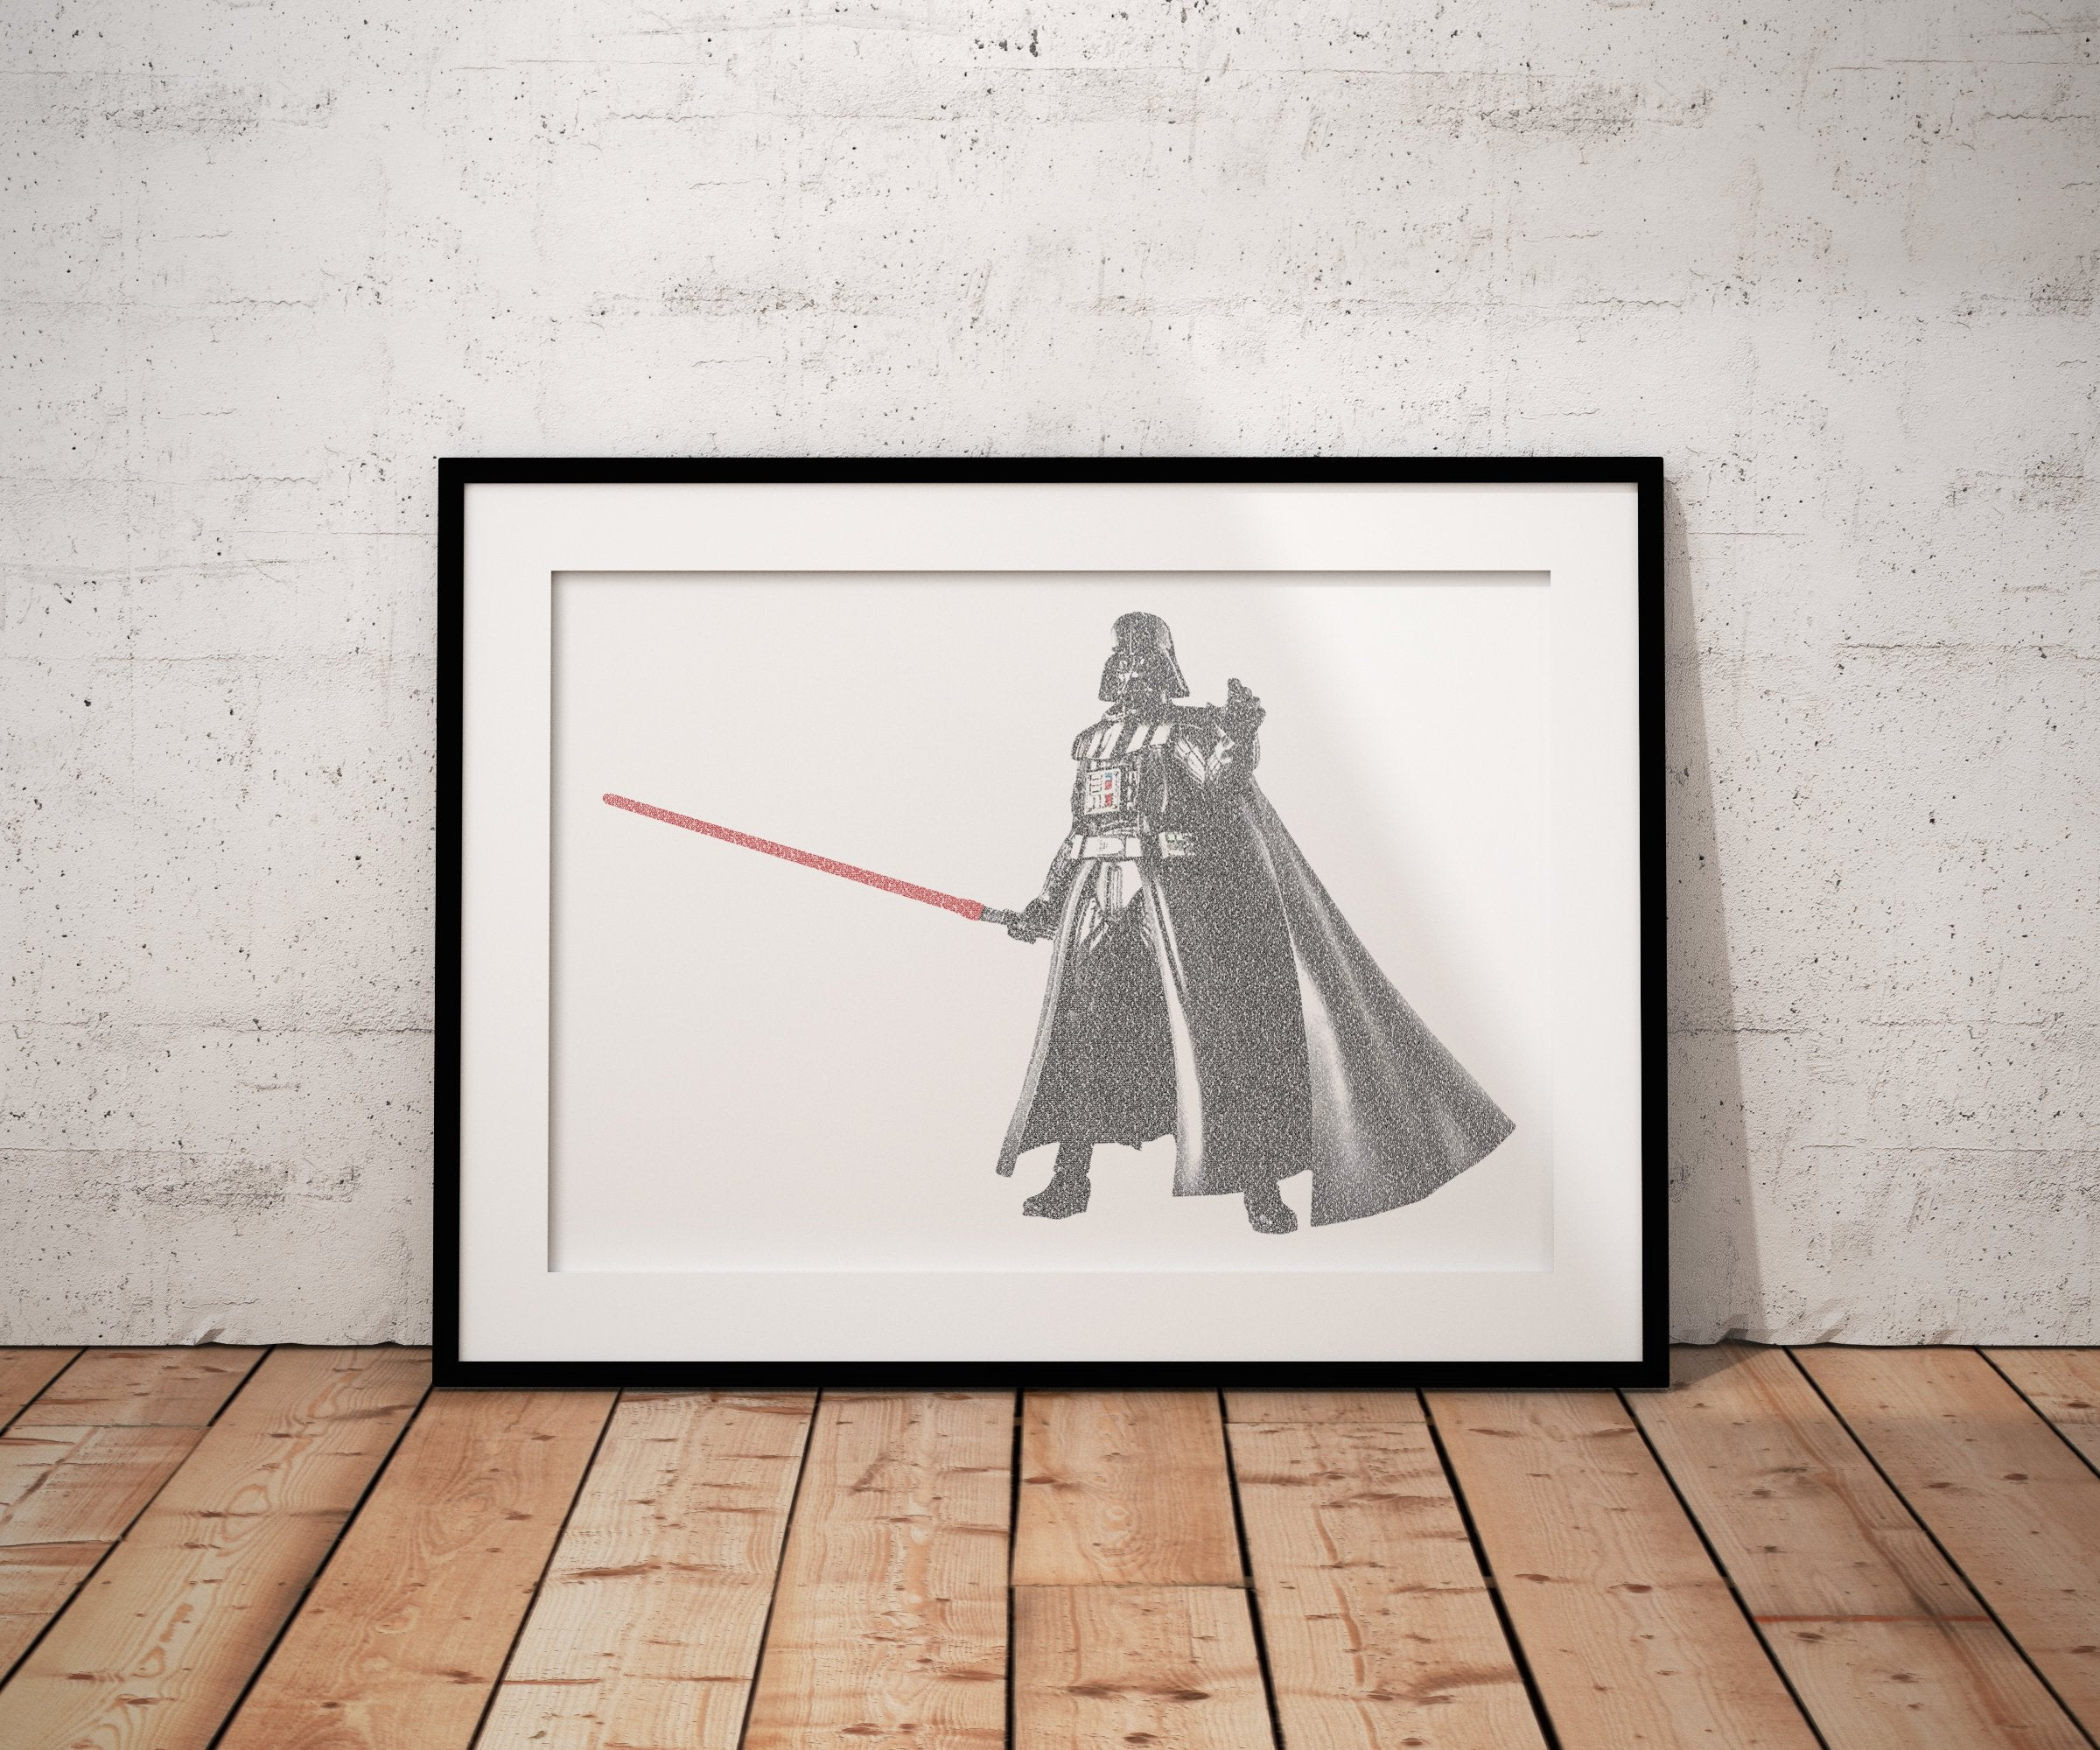 Darth Vader, Wedding vow art, Star Wars, inspired, 1st Anniversary, Custom, Print, Calligram, Words, gift, for him, husband, framed, paper